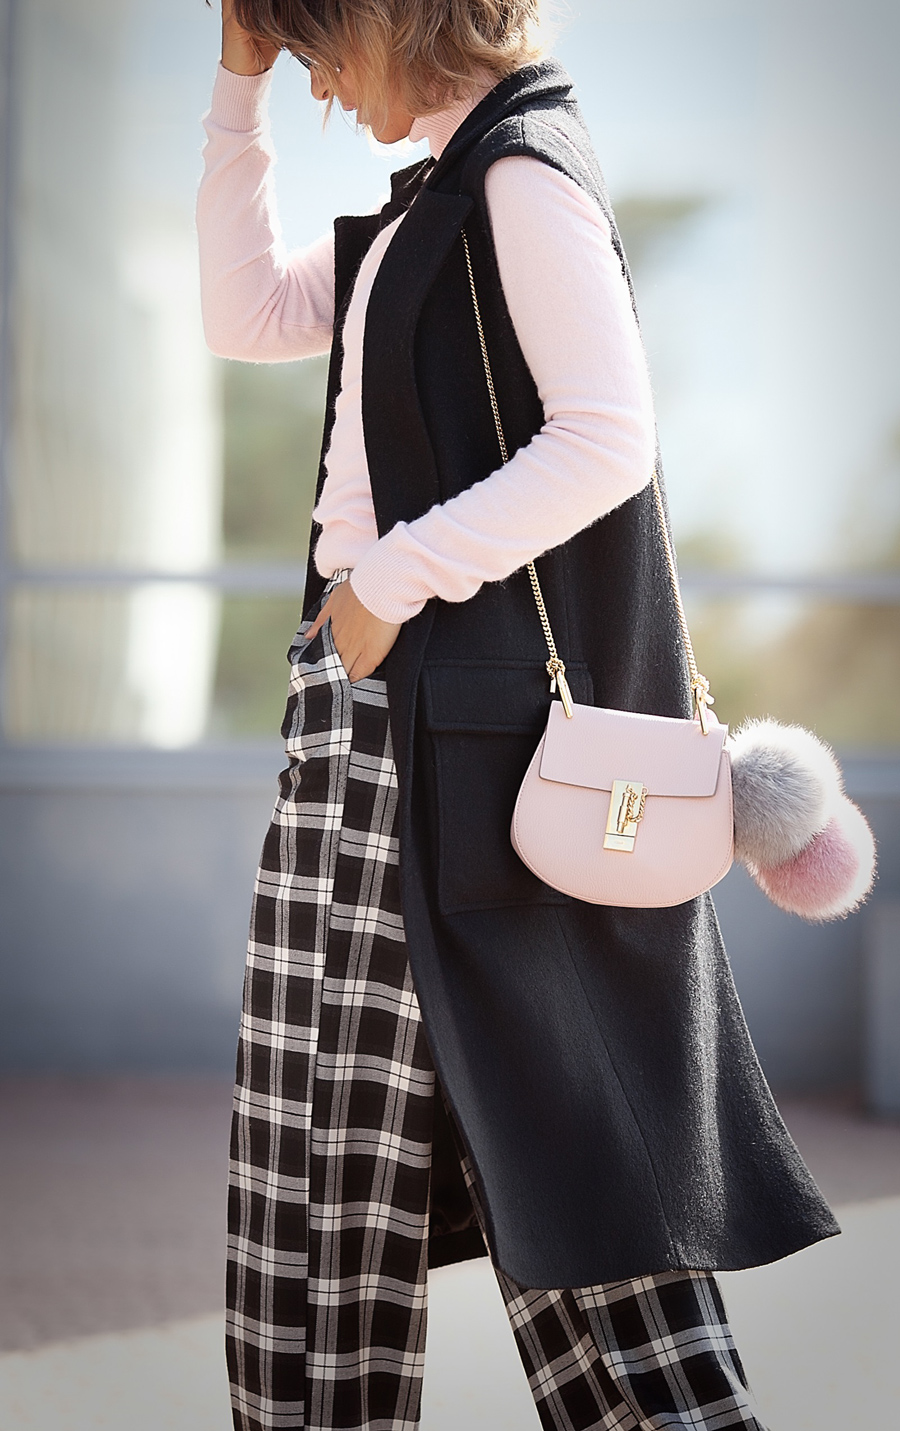 autumn-outfit-ideas-chloe+drew+in+pink